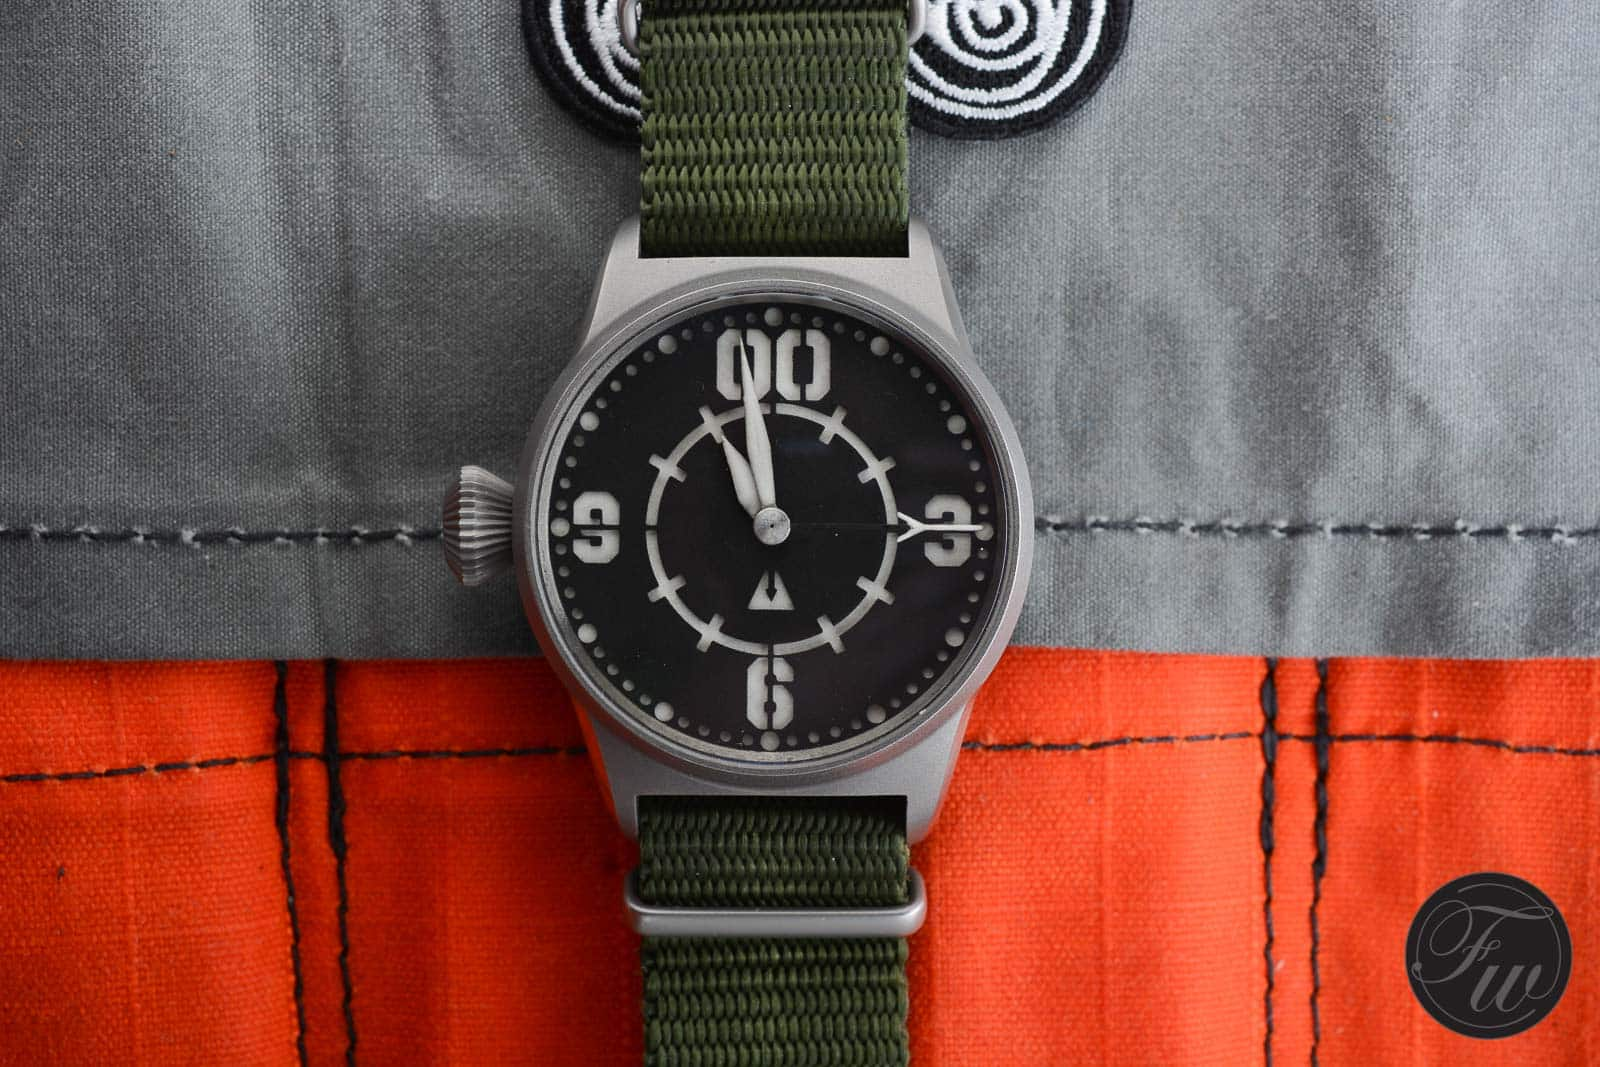 Subdelta Ace Fratellowatches Horloge Test review